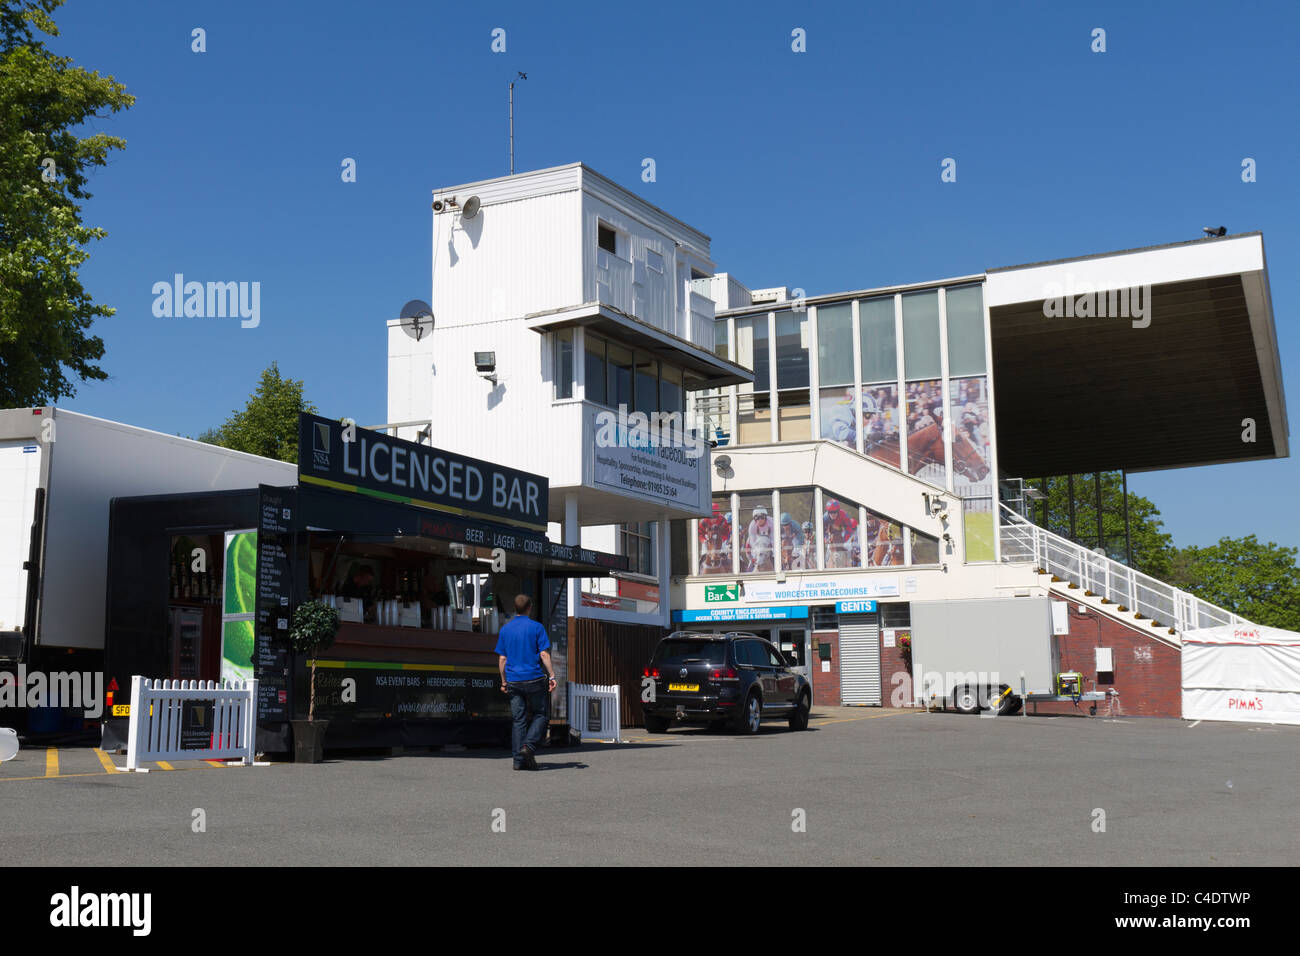 Worcester Bar Stock Photos & Worcester Bar Stock Images - Alamy